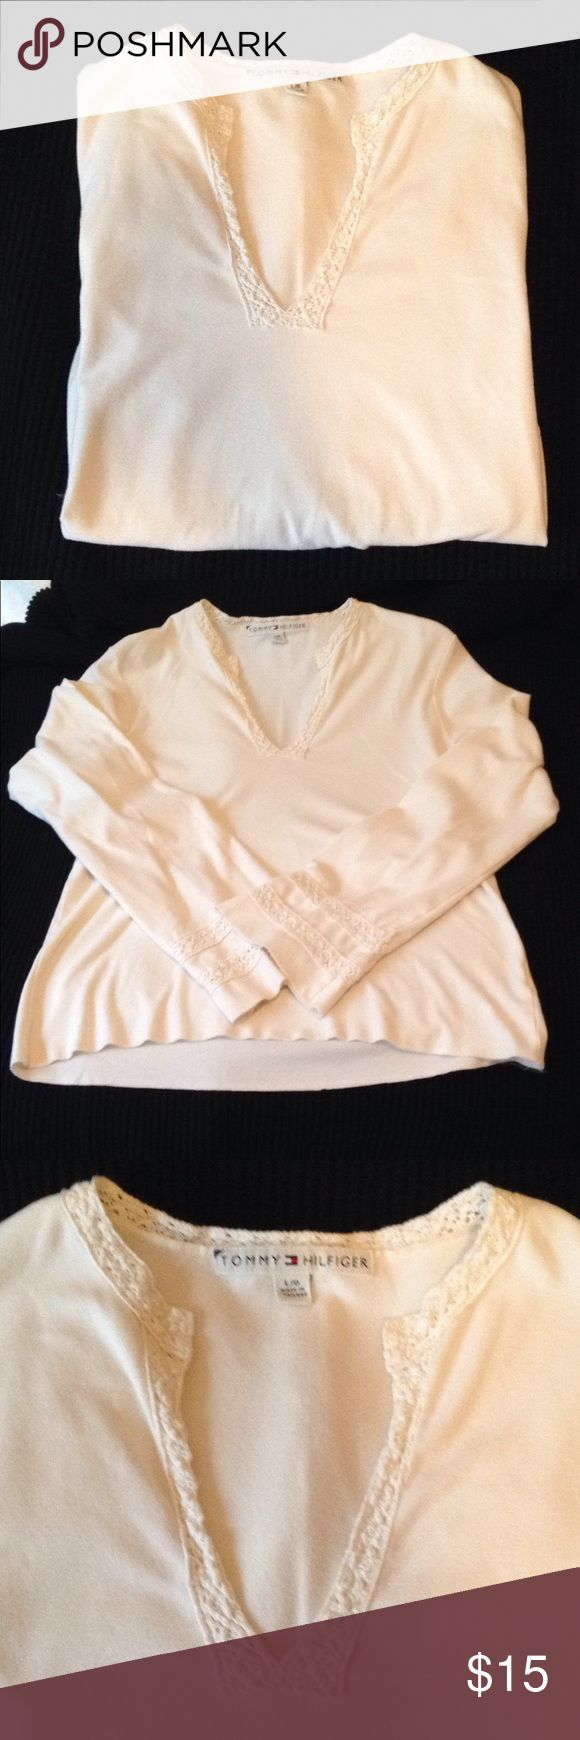 TOMMY HILFIGER L/G Stylish TOMMY HILFIGER Shirt. Accented V Neck And Sleeves (looks like crochet). Gently Used. Size Large But I Would Say It Fits More Like A Medium. Would Go Great With Bohemian Wardrobe! Tommy Hilfiger Tops